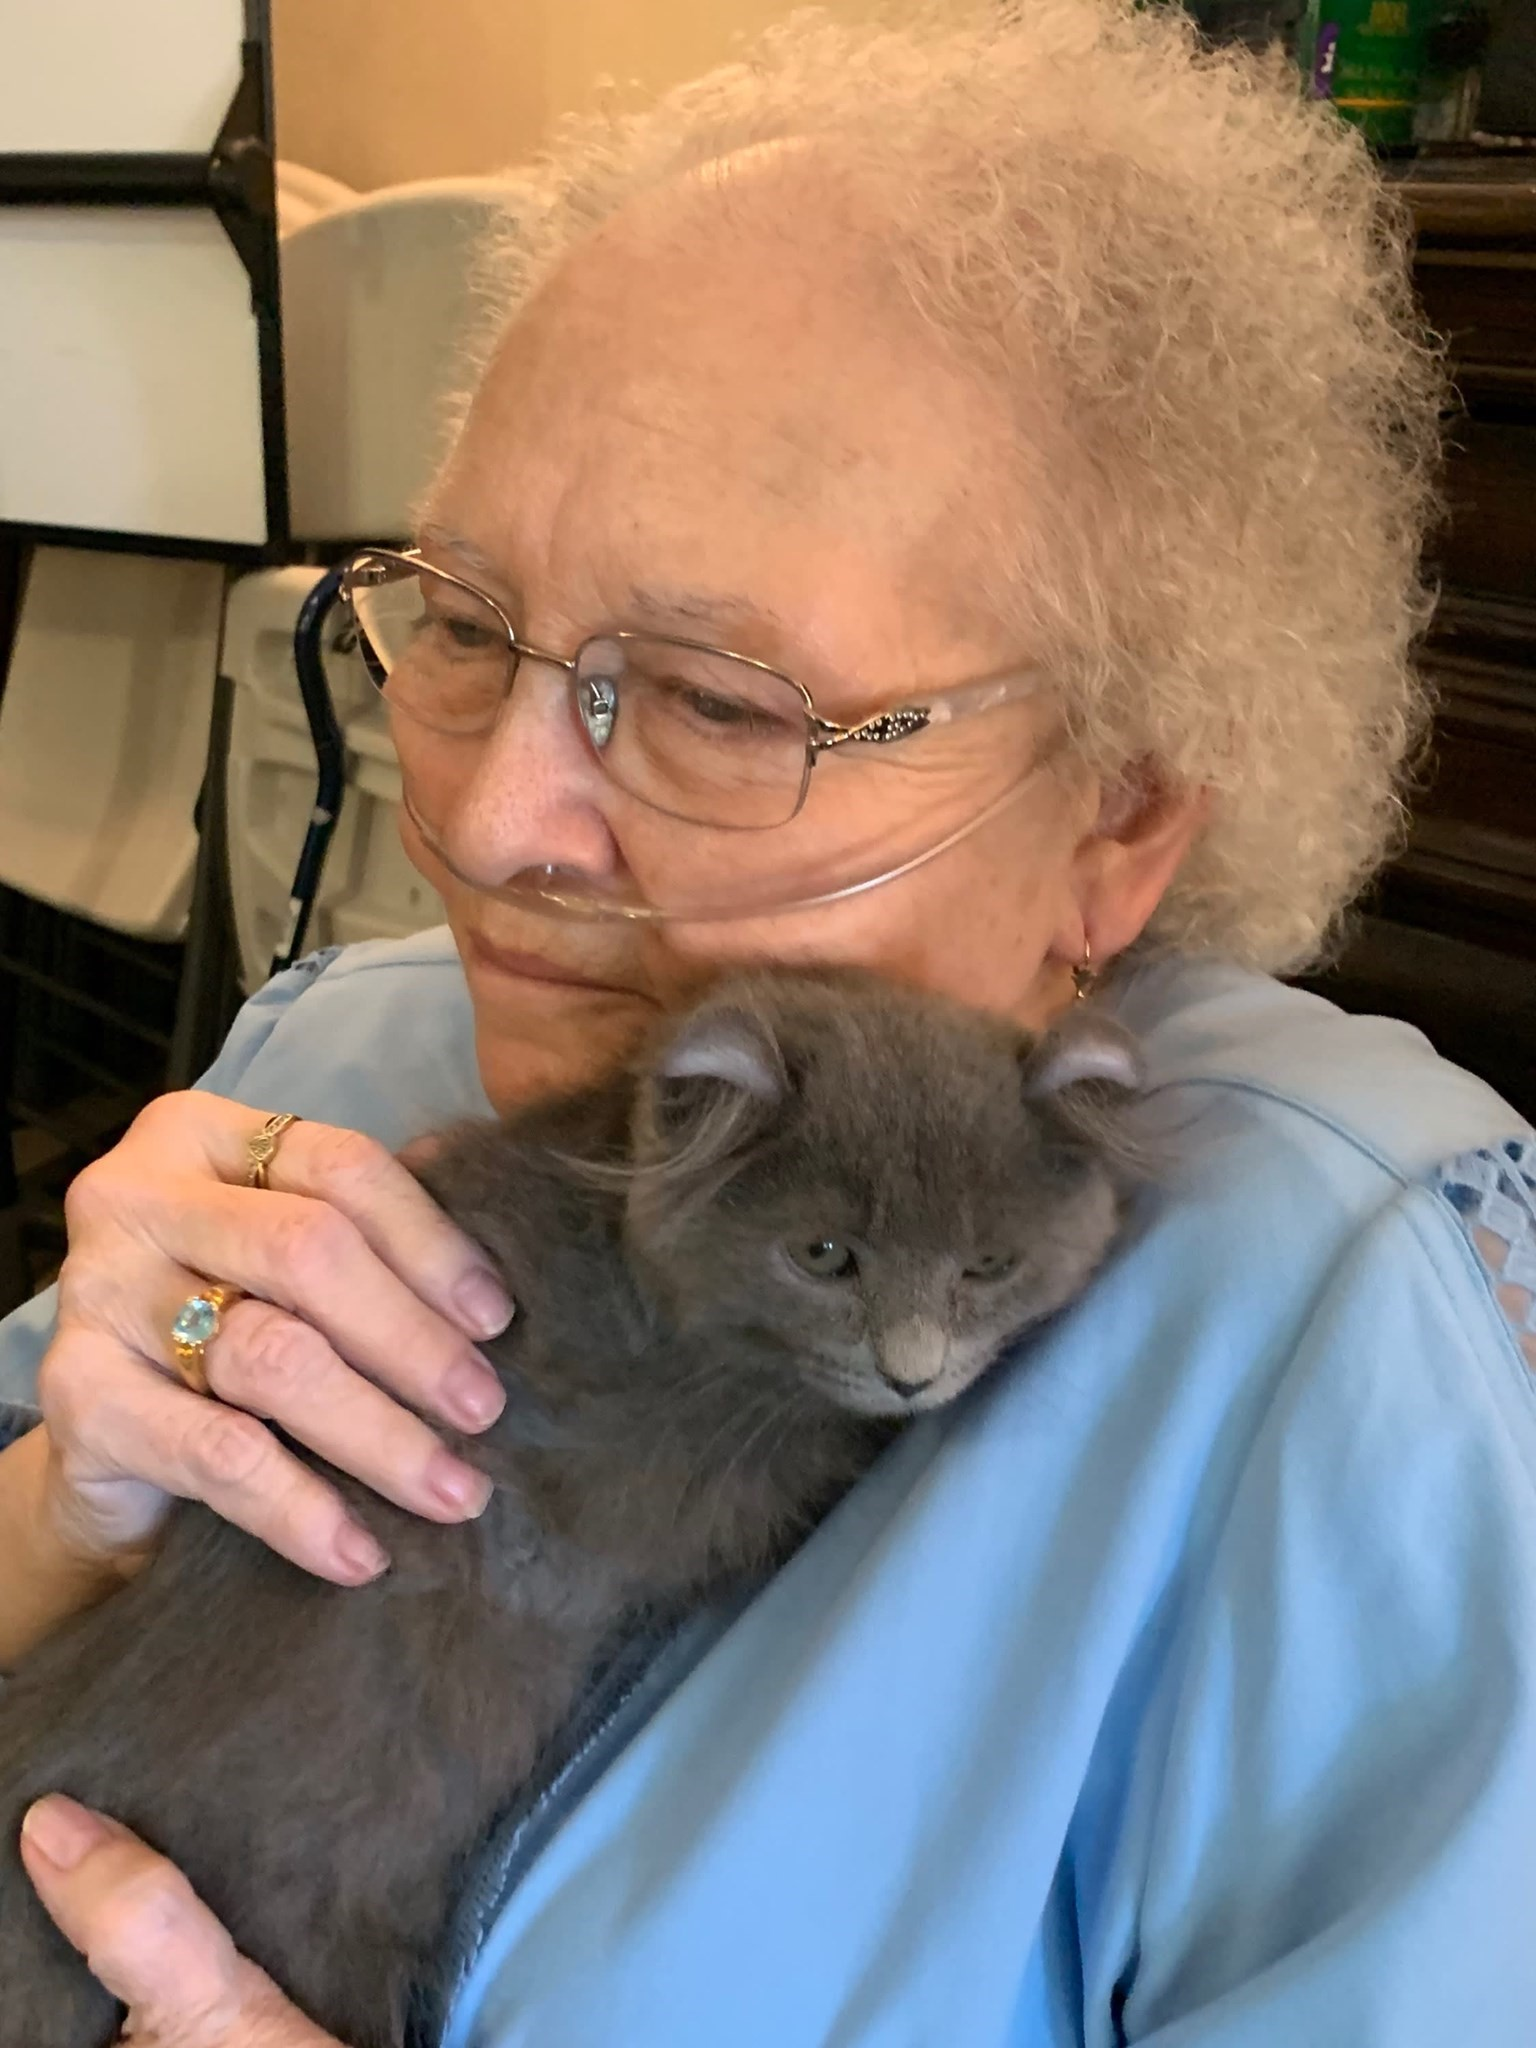 More than pet-friendly, we do pet therapy days at Pacifica Senior Living Millcreek.